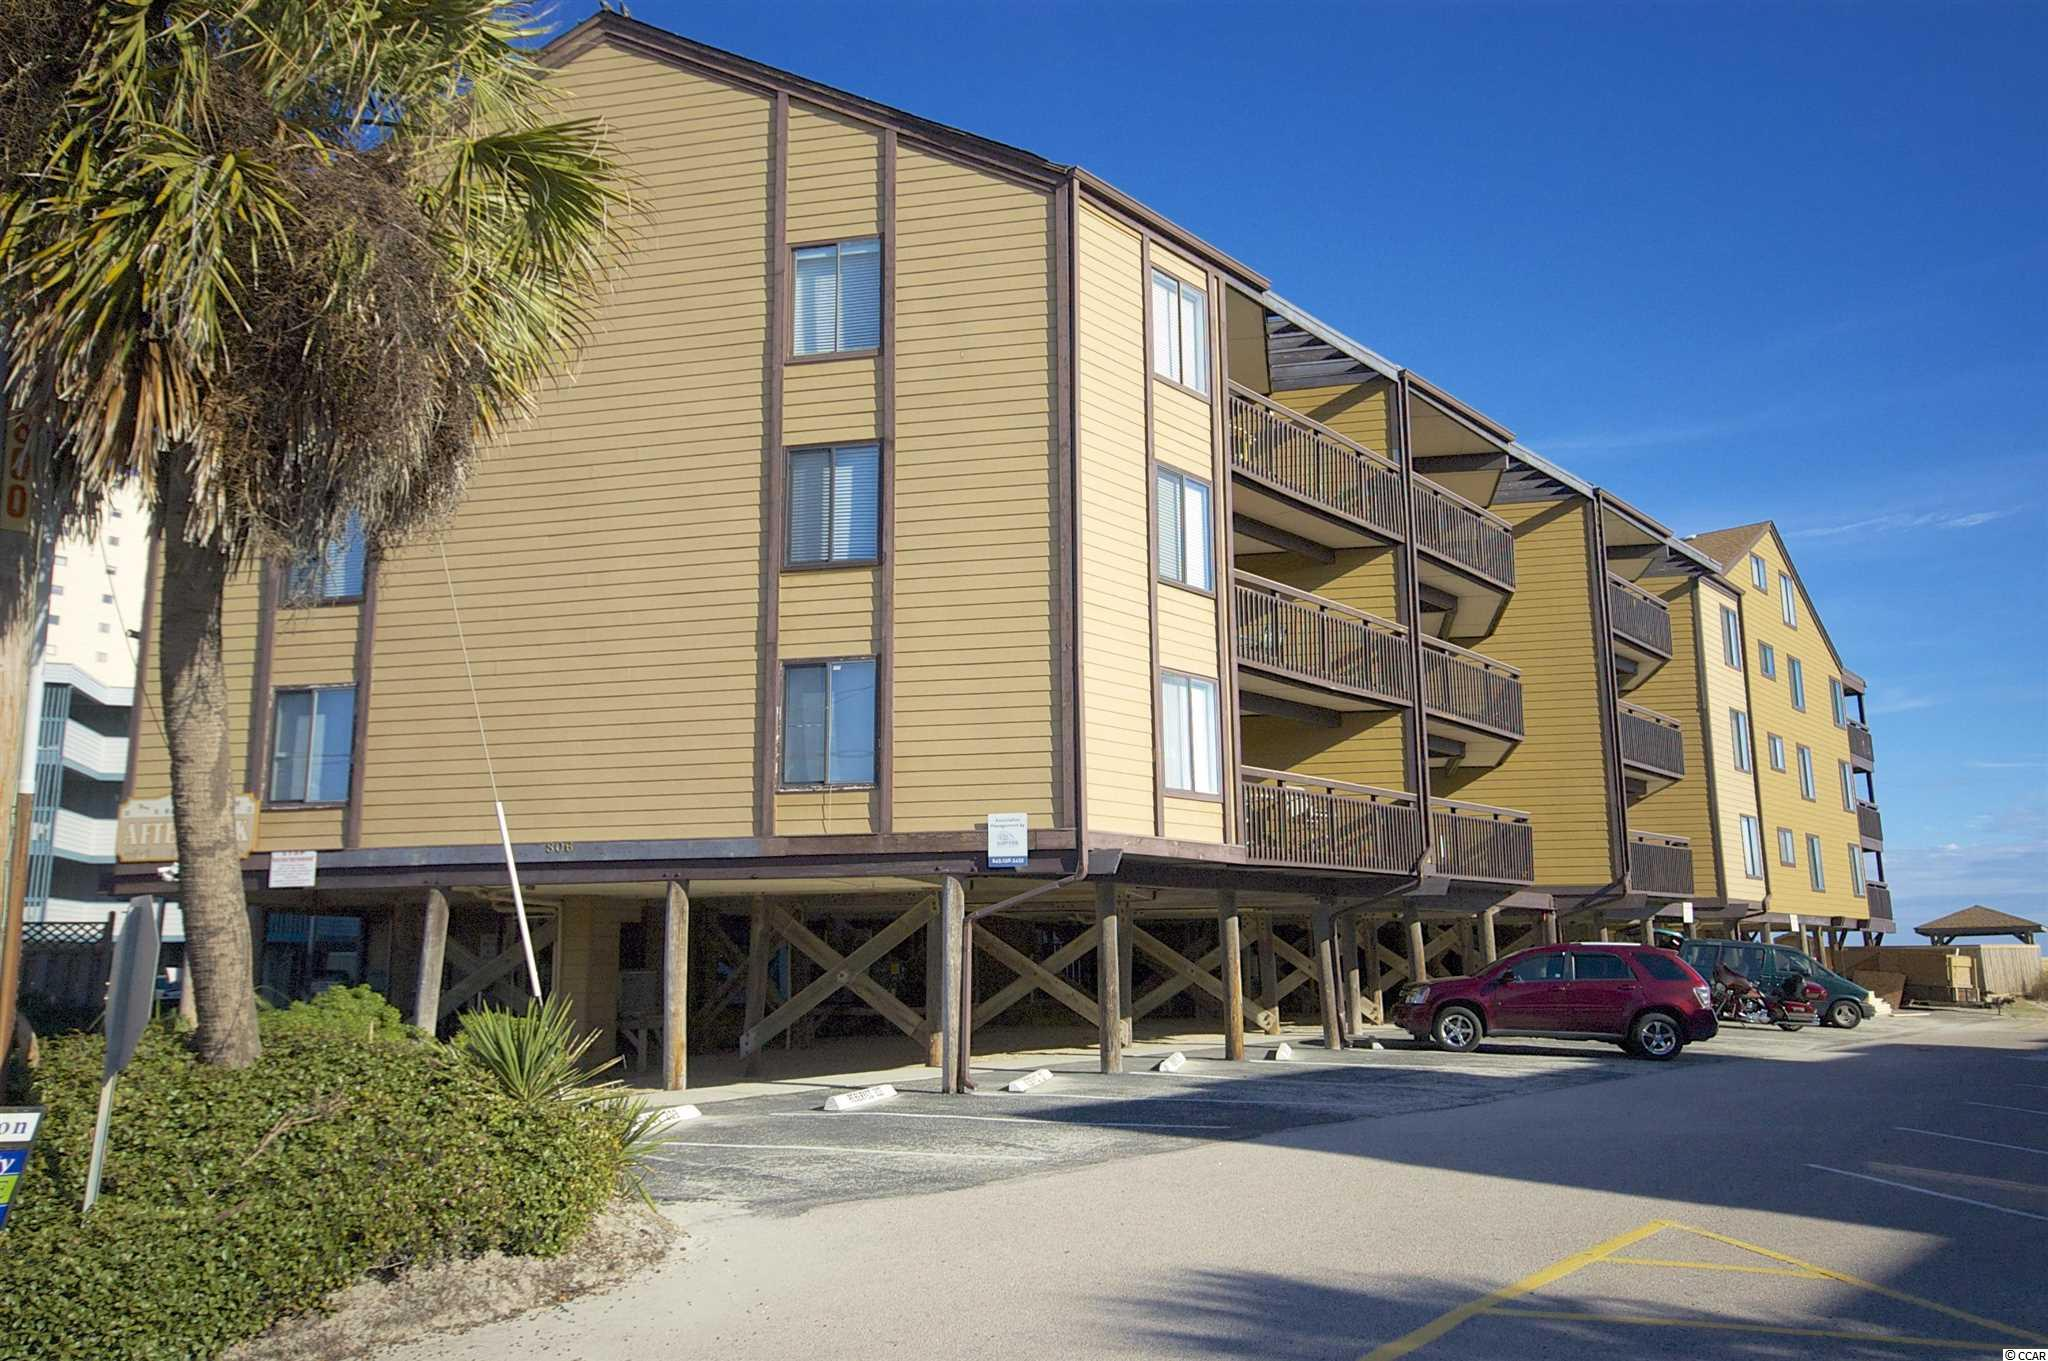 Looking for a spacious ocean view condo in Garden City Beach? This property has a great view from the balcony as well as the living room of the property. The condo features two bedrooms and two baths, a great kitchen that over looks the dining area and the living room. There is a laundry room in the condo as well. Afterdeck features an elevator as well as a pool. Not too many places feature both for this price! There is also a private storage room under the building for this unit. It's a great place to store all of your beach gear!